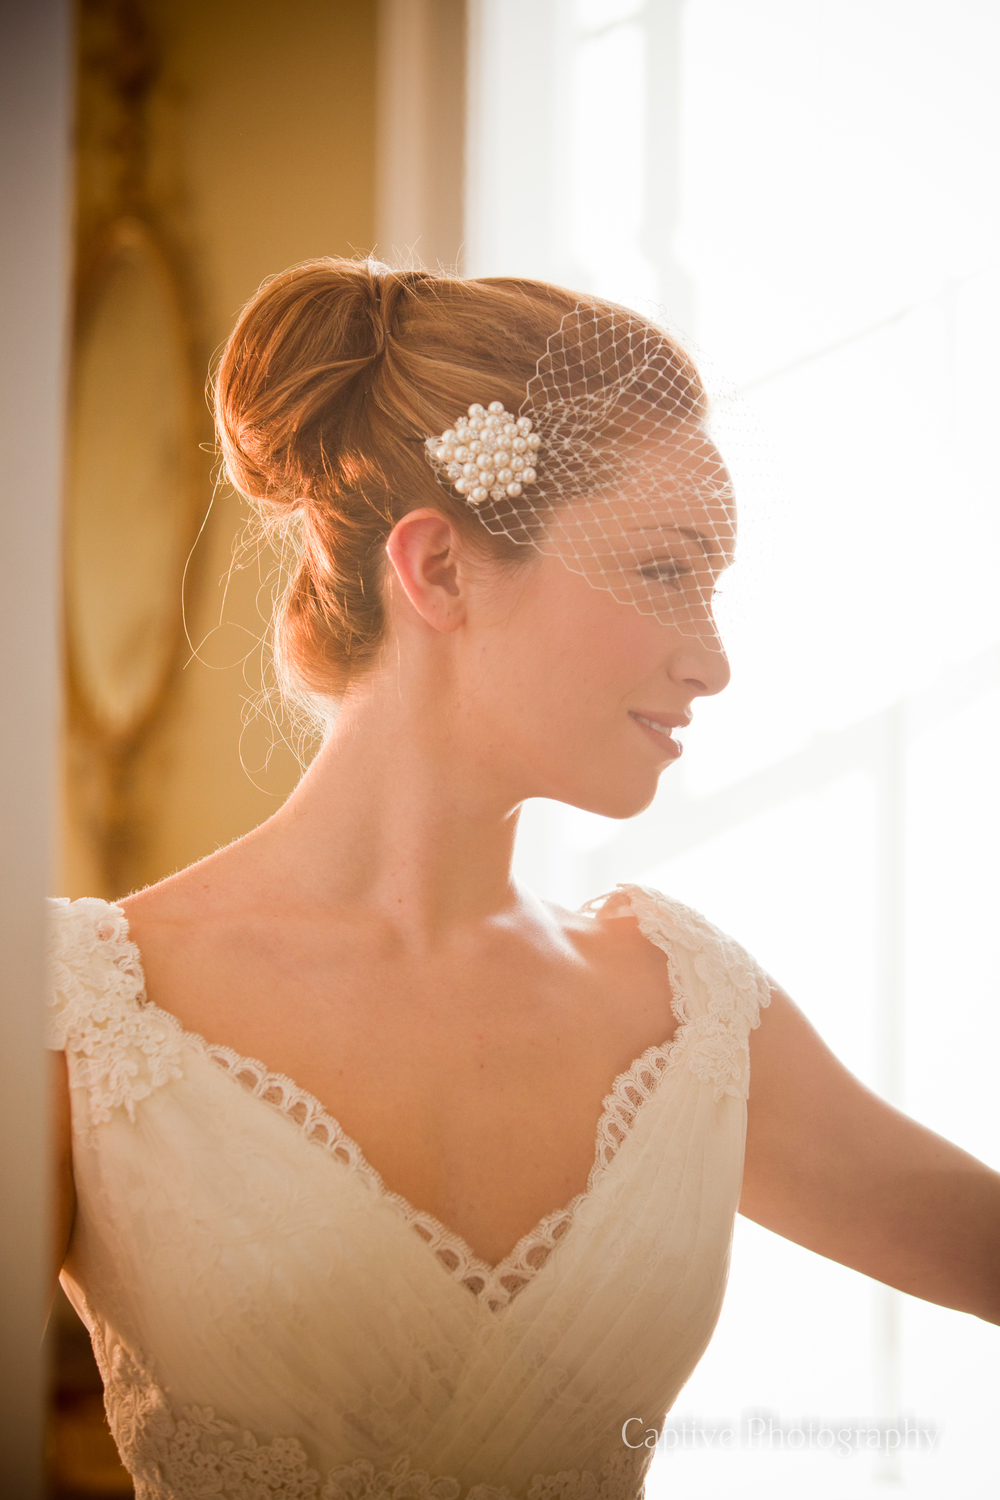 Hair Up With Visor Veil